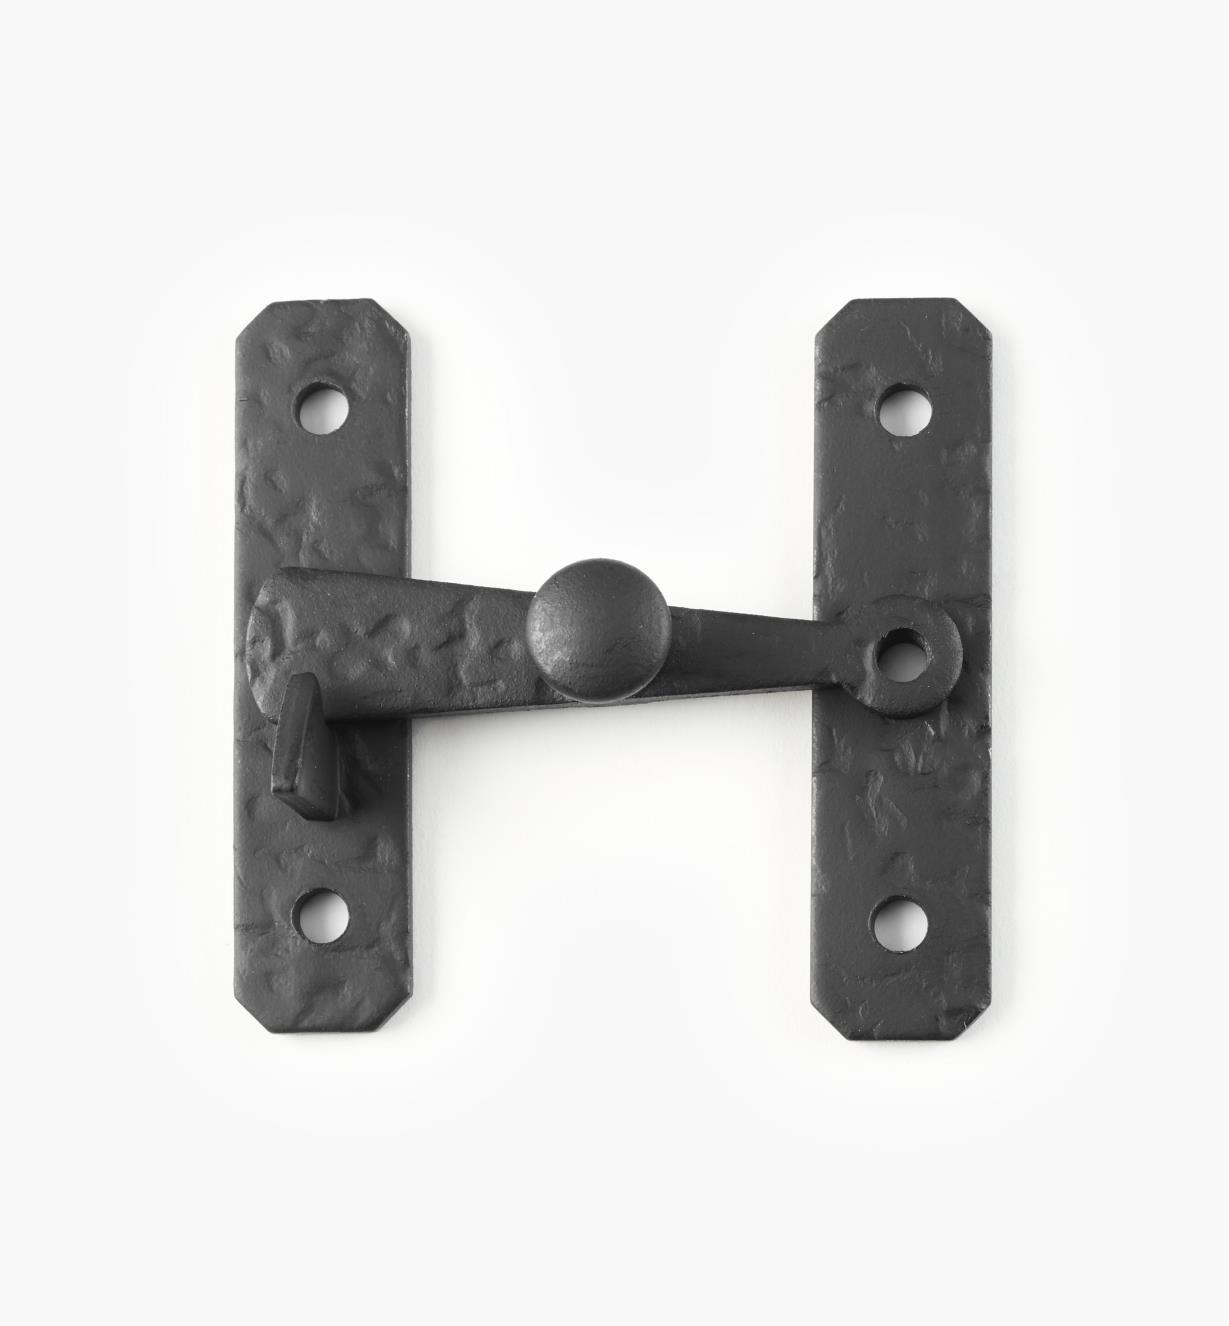 "01X3920 - 2 5/8"" x 2 1/2"" Simple Latch"